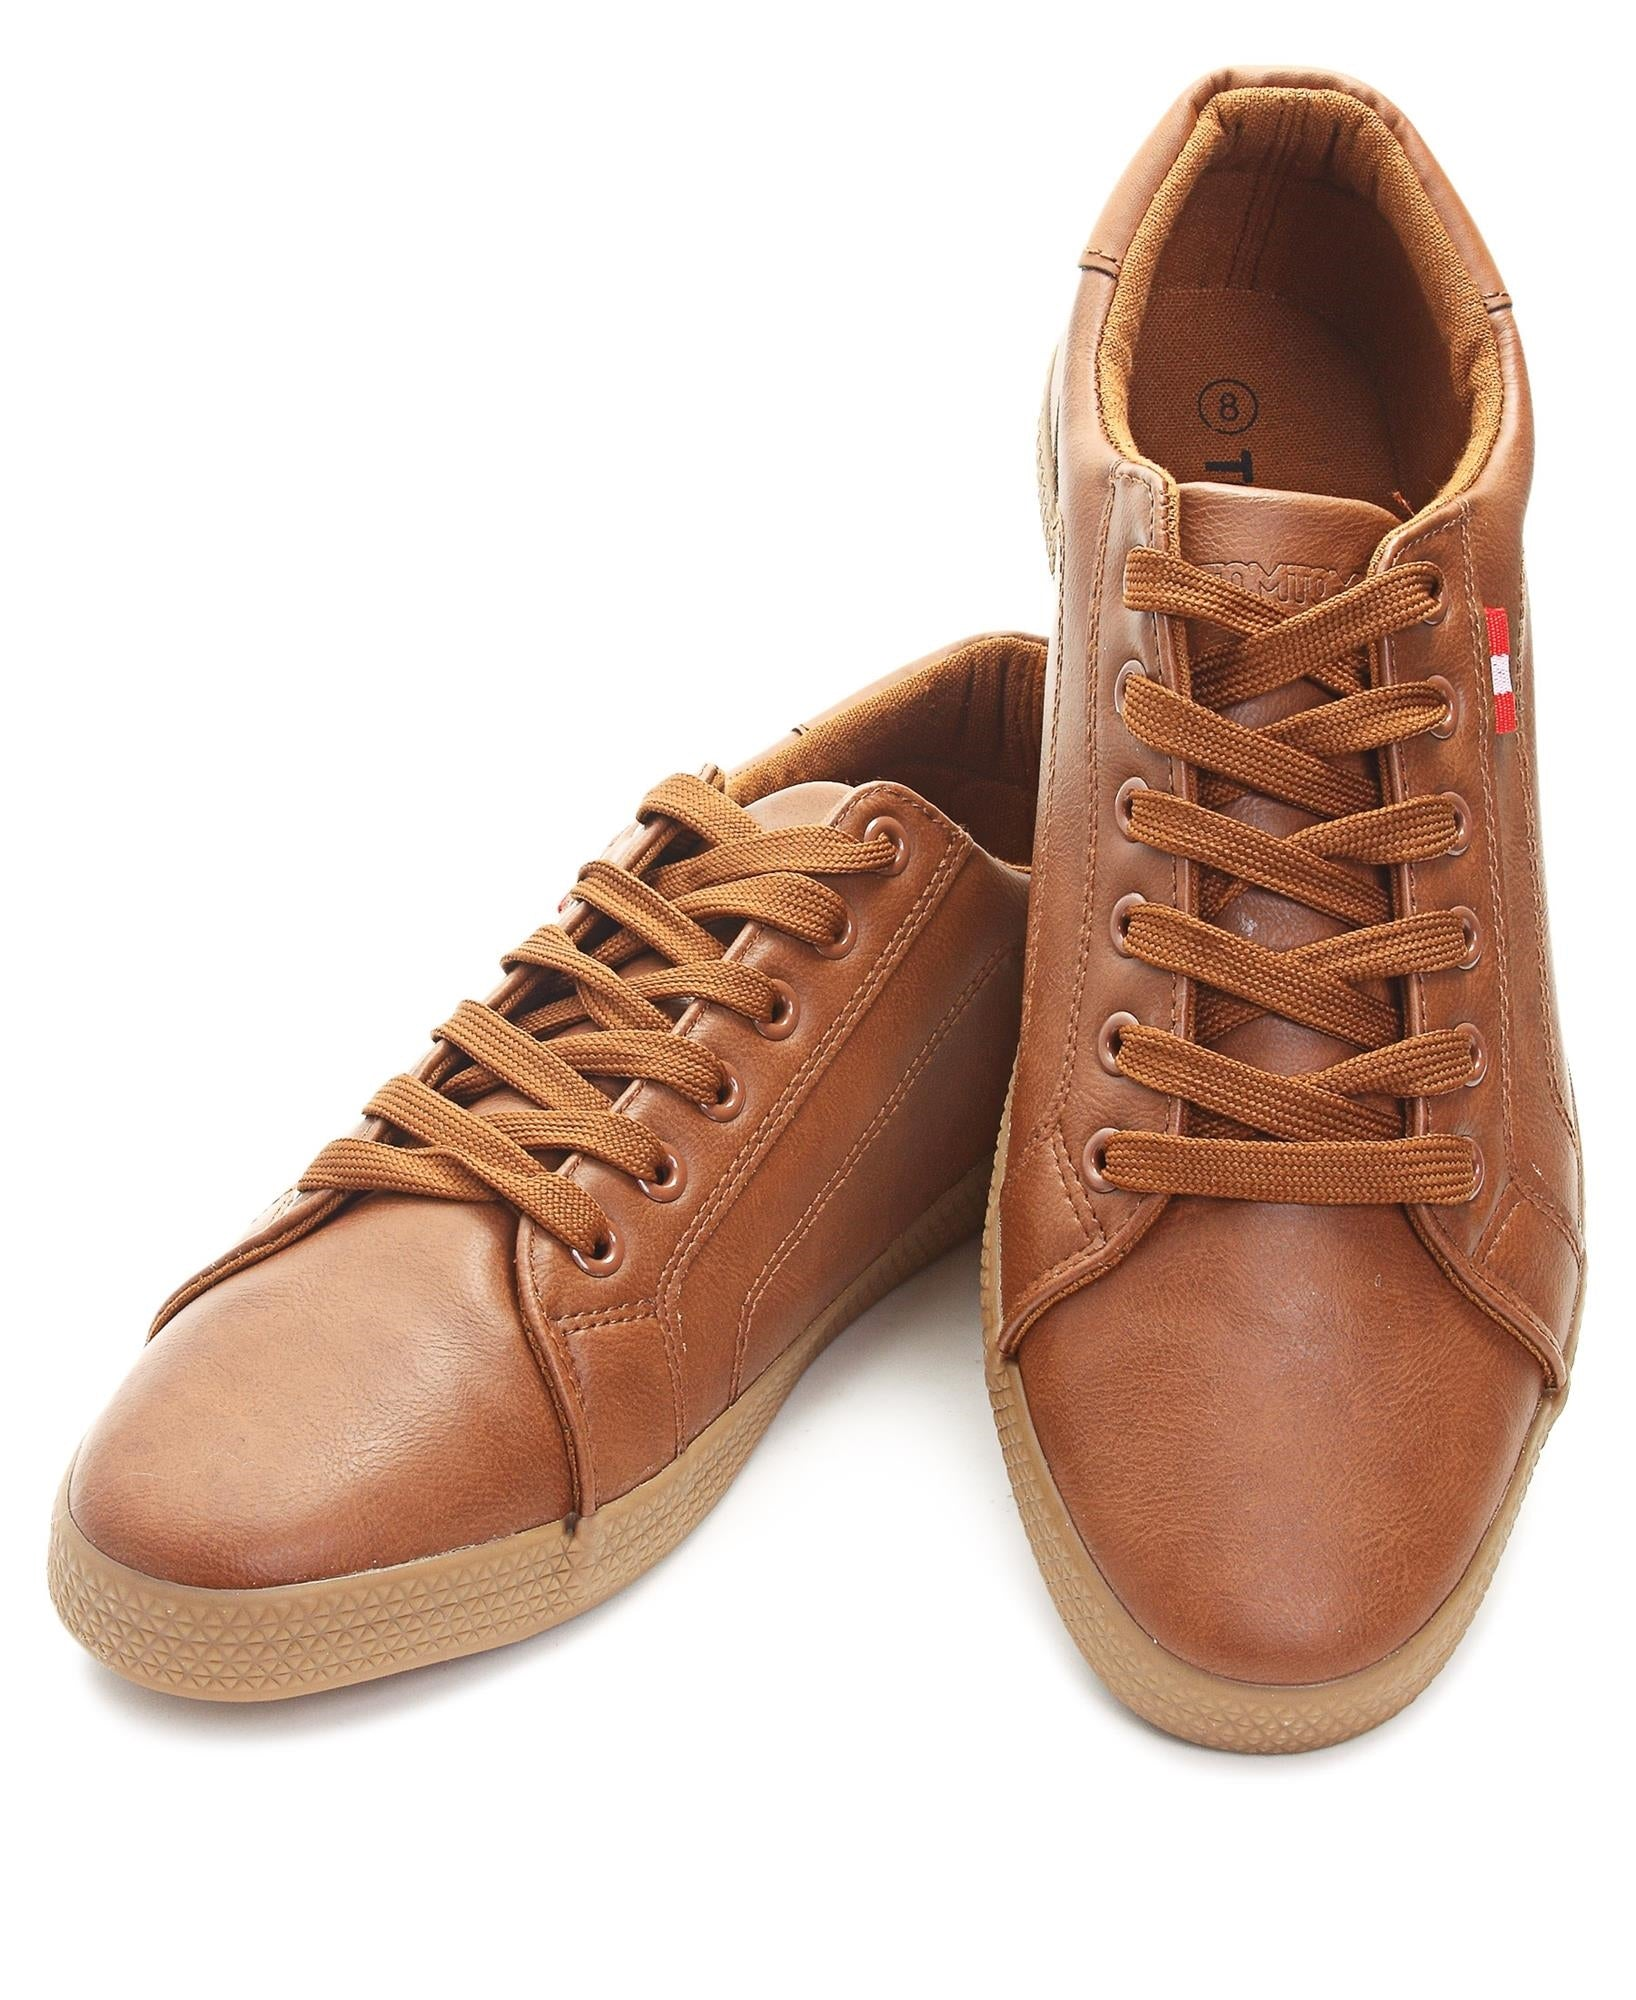 Men's Light Sneakers - Tan